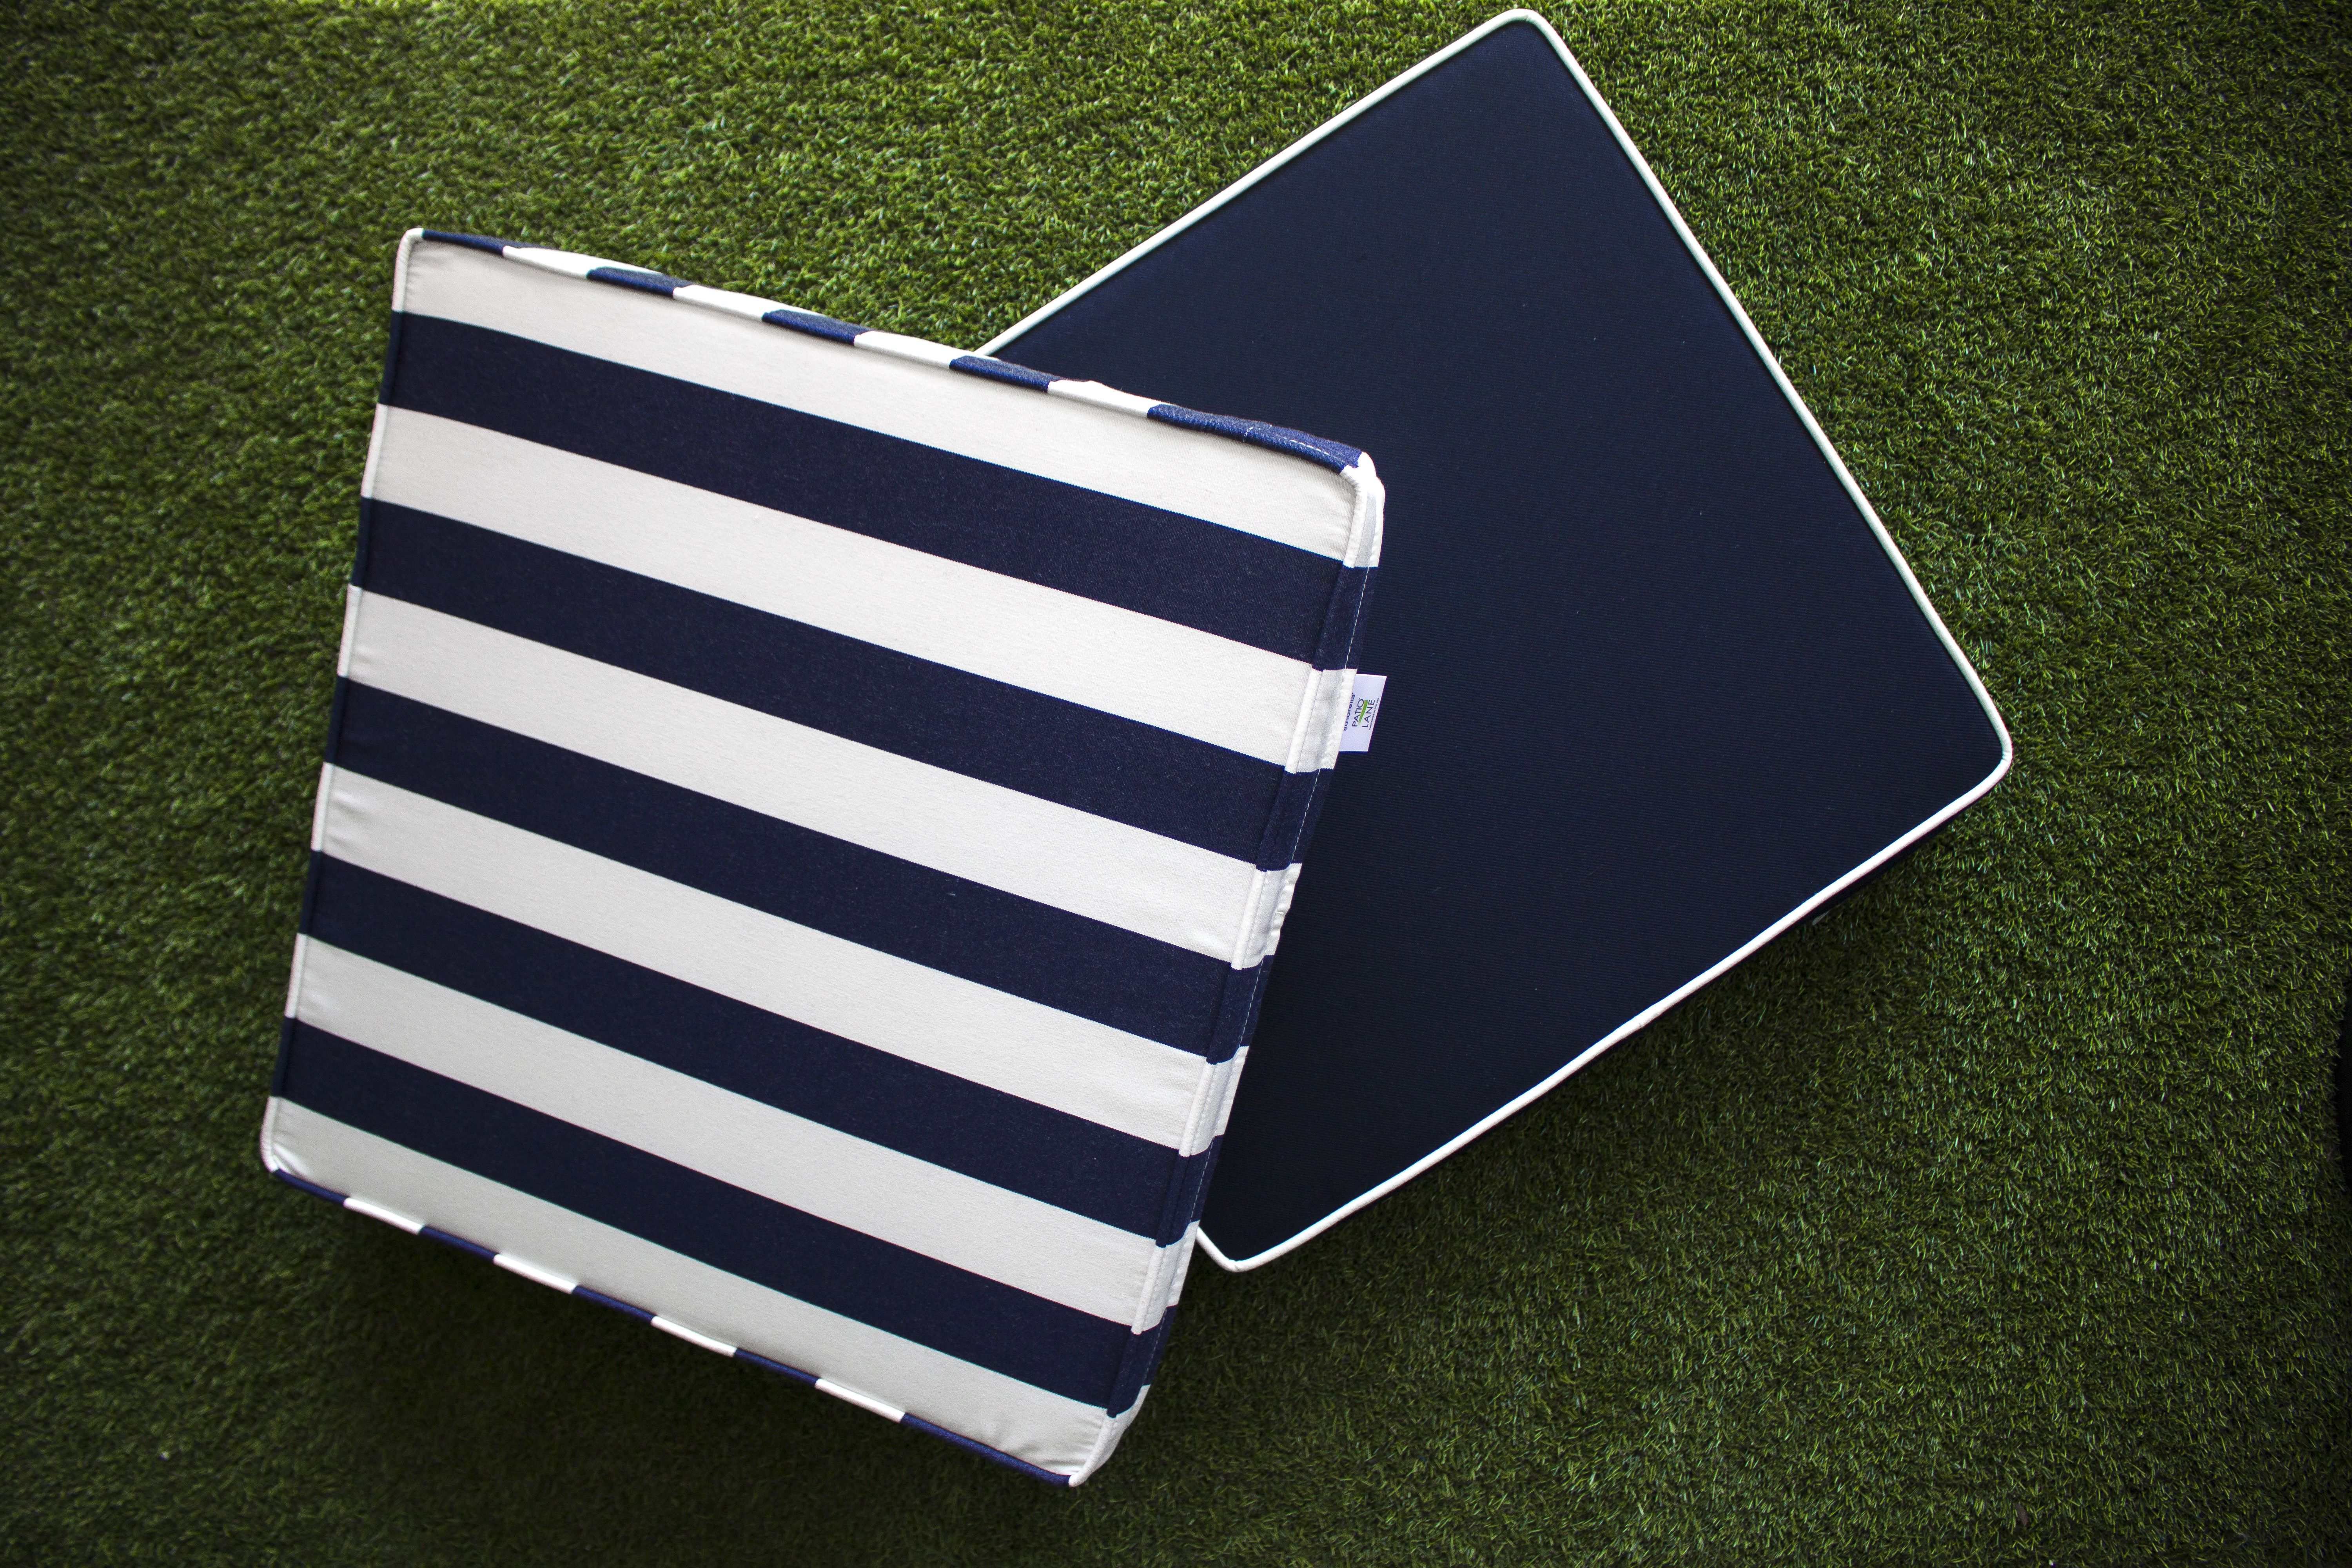 Custom Blue And White Chair Cushions Made With Sunbrella Fabric Mix